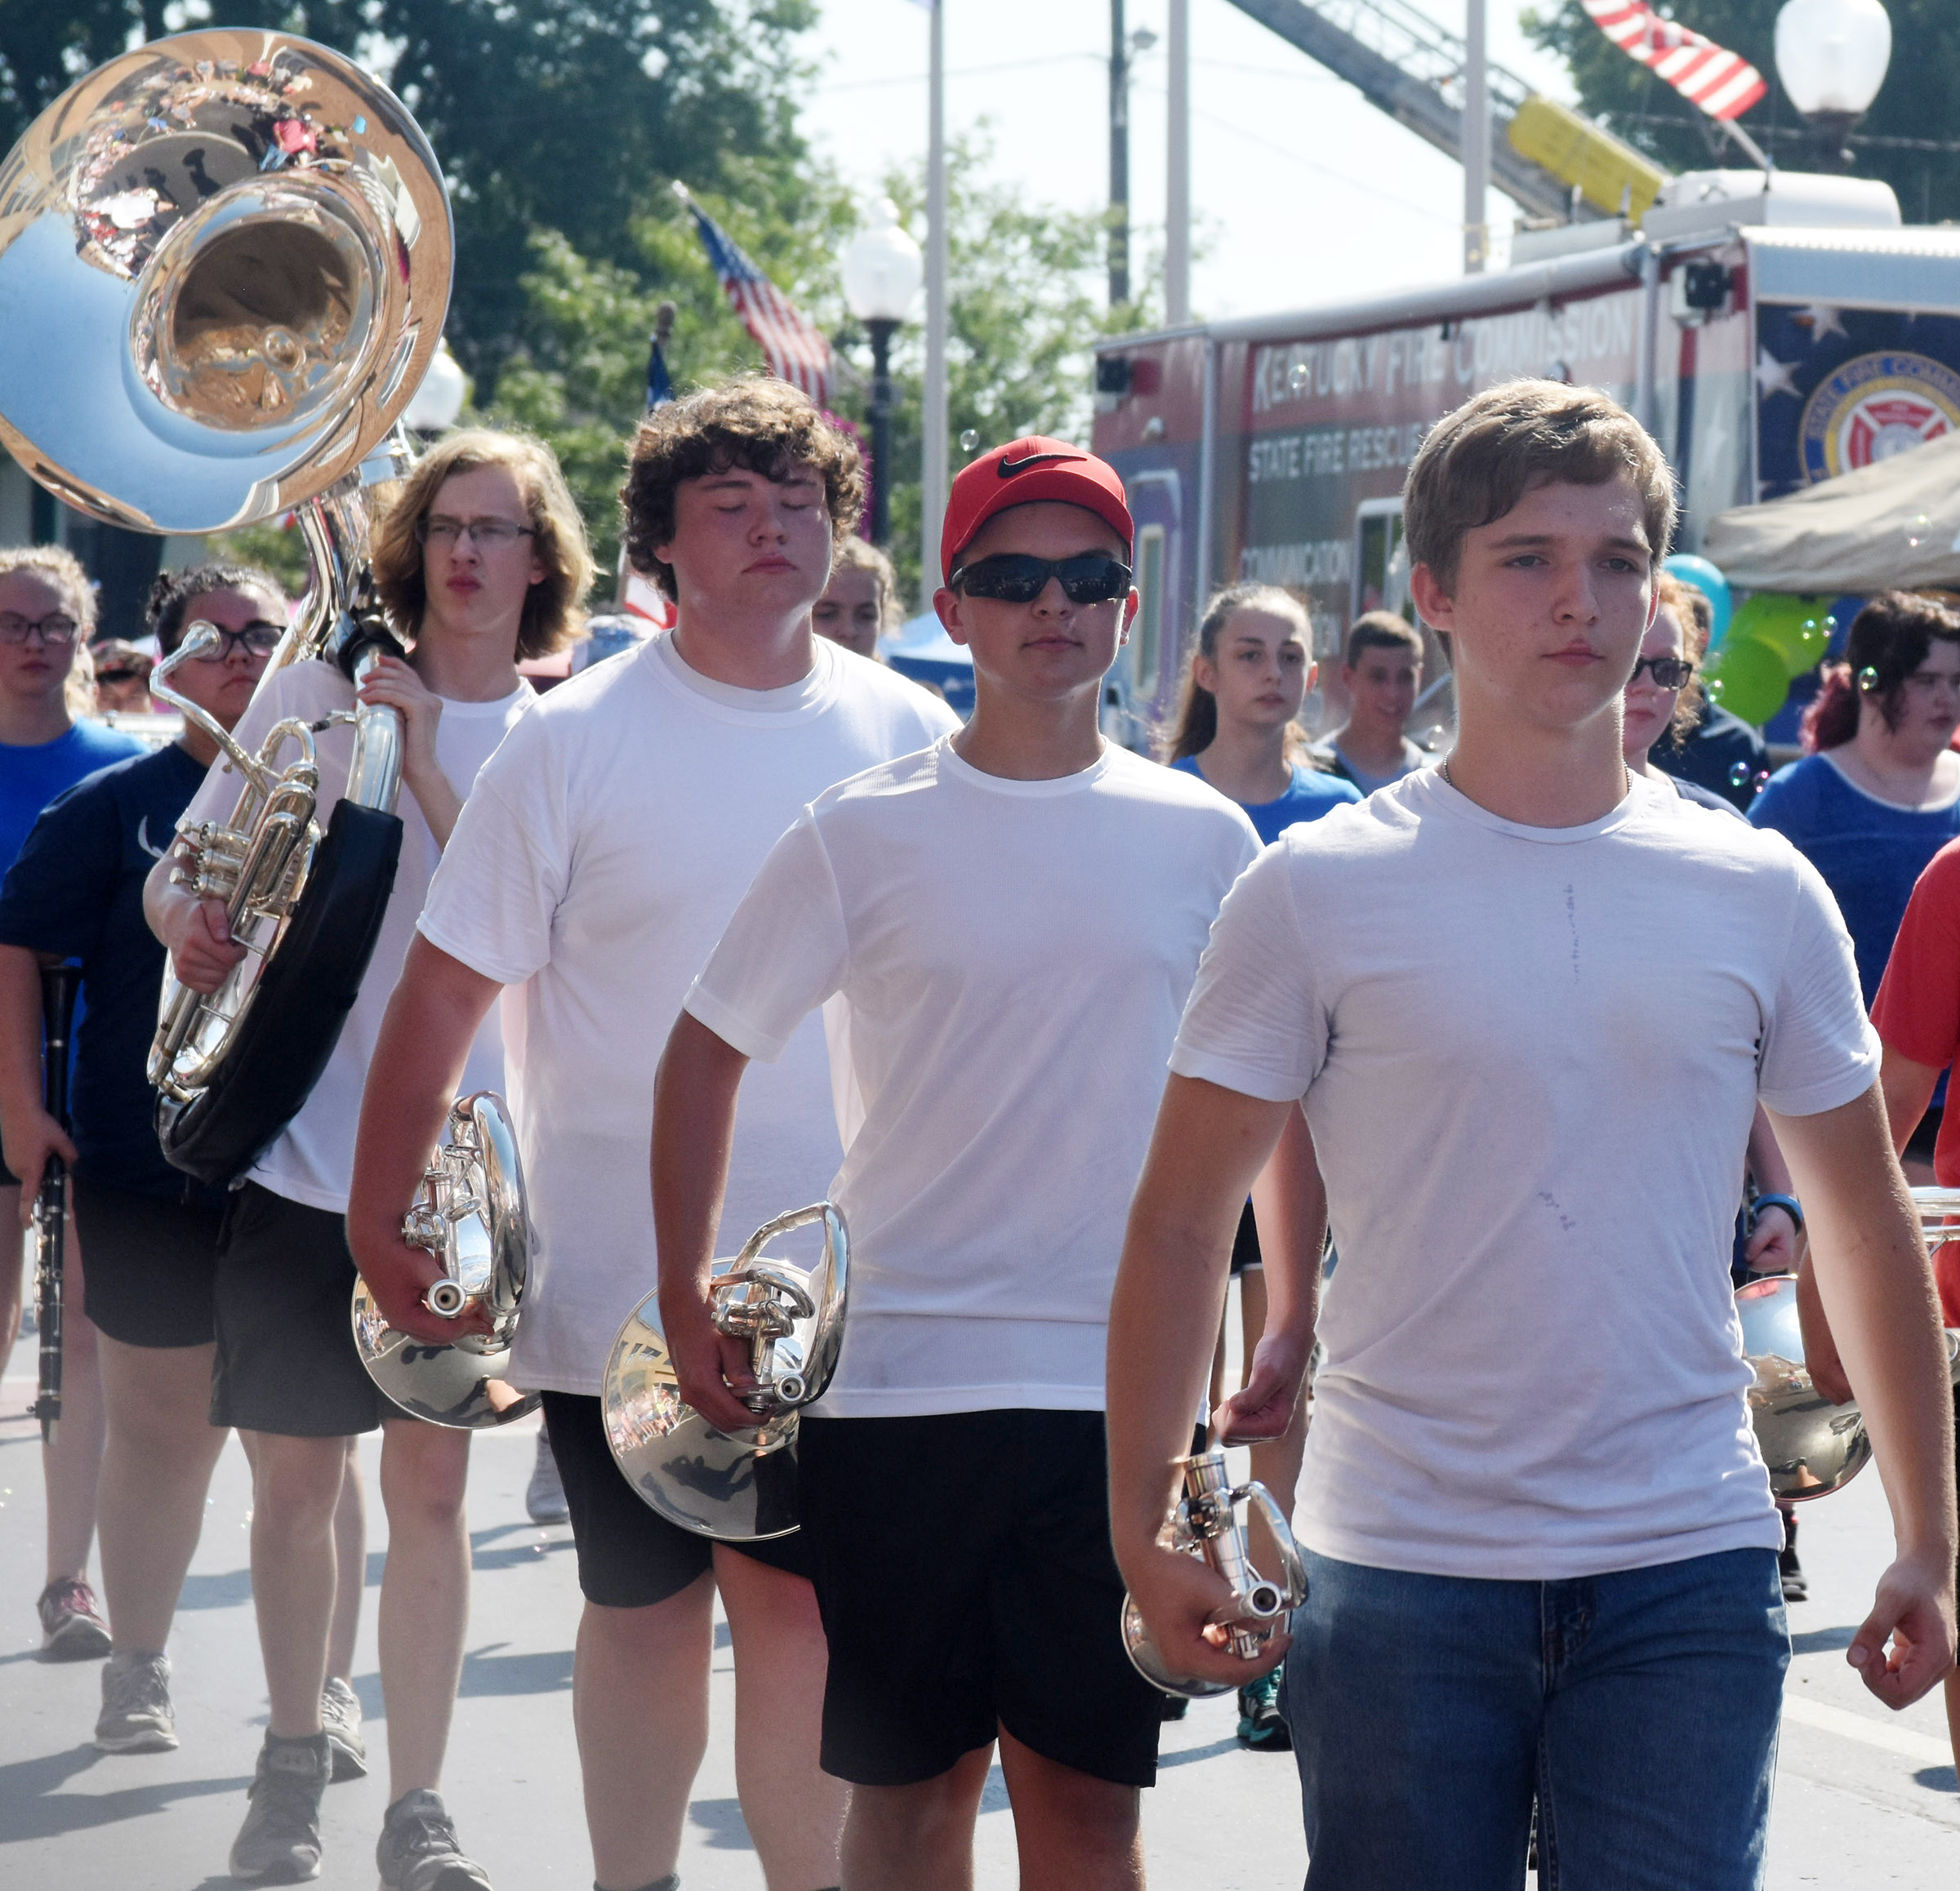 Campbellsville High School sophomore Tristin Lopez, at right, marches with the band.